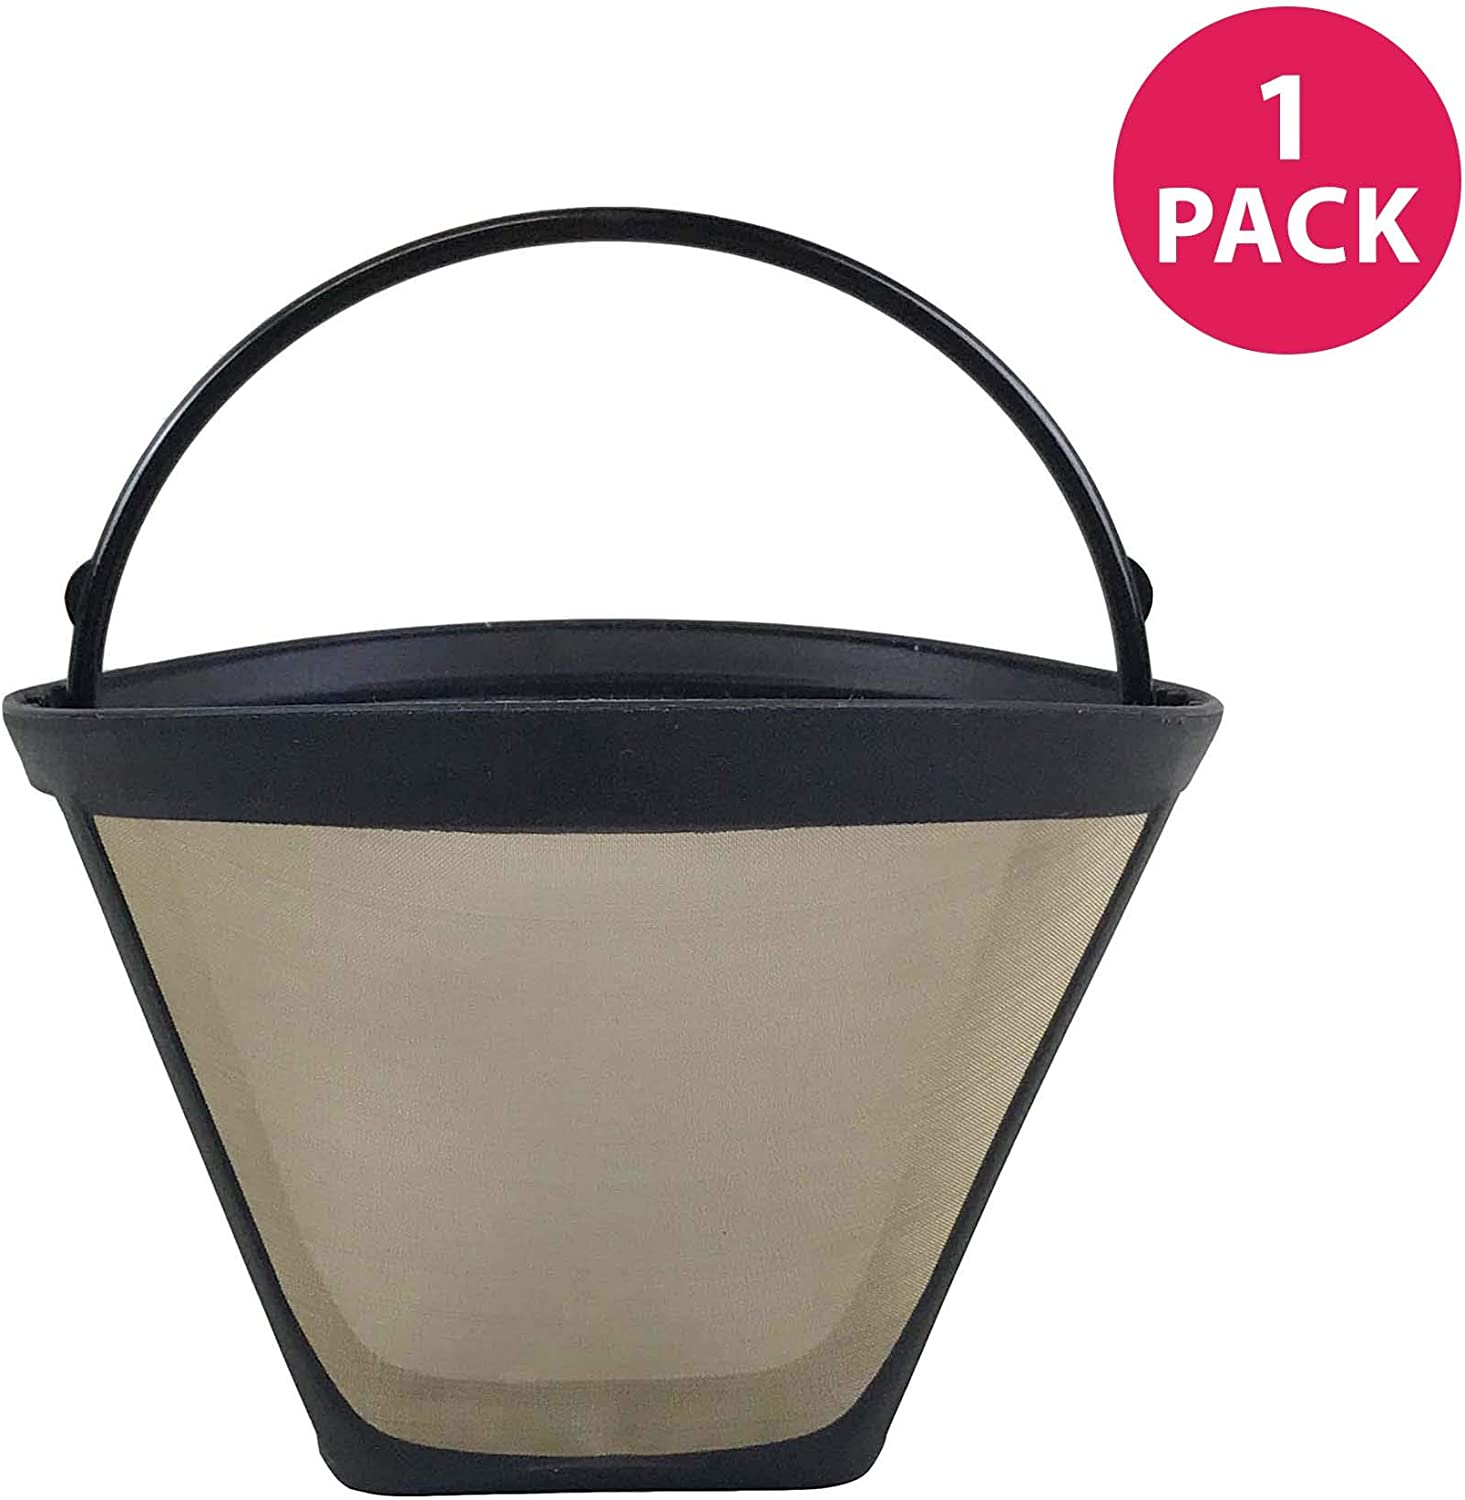 Think Crucial Replacement for Cuisinart #4 Coffee Filter Fits DTC-975BKN Thermal 12-Cup Programmable Coffee Maker, Washable & Reusable